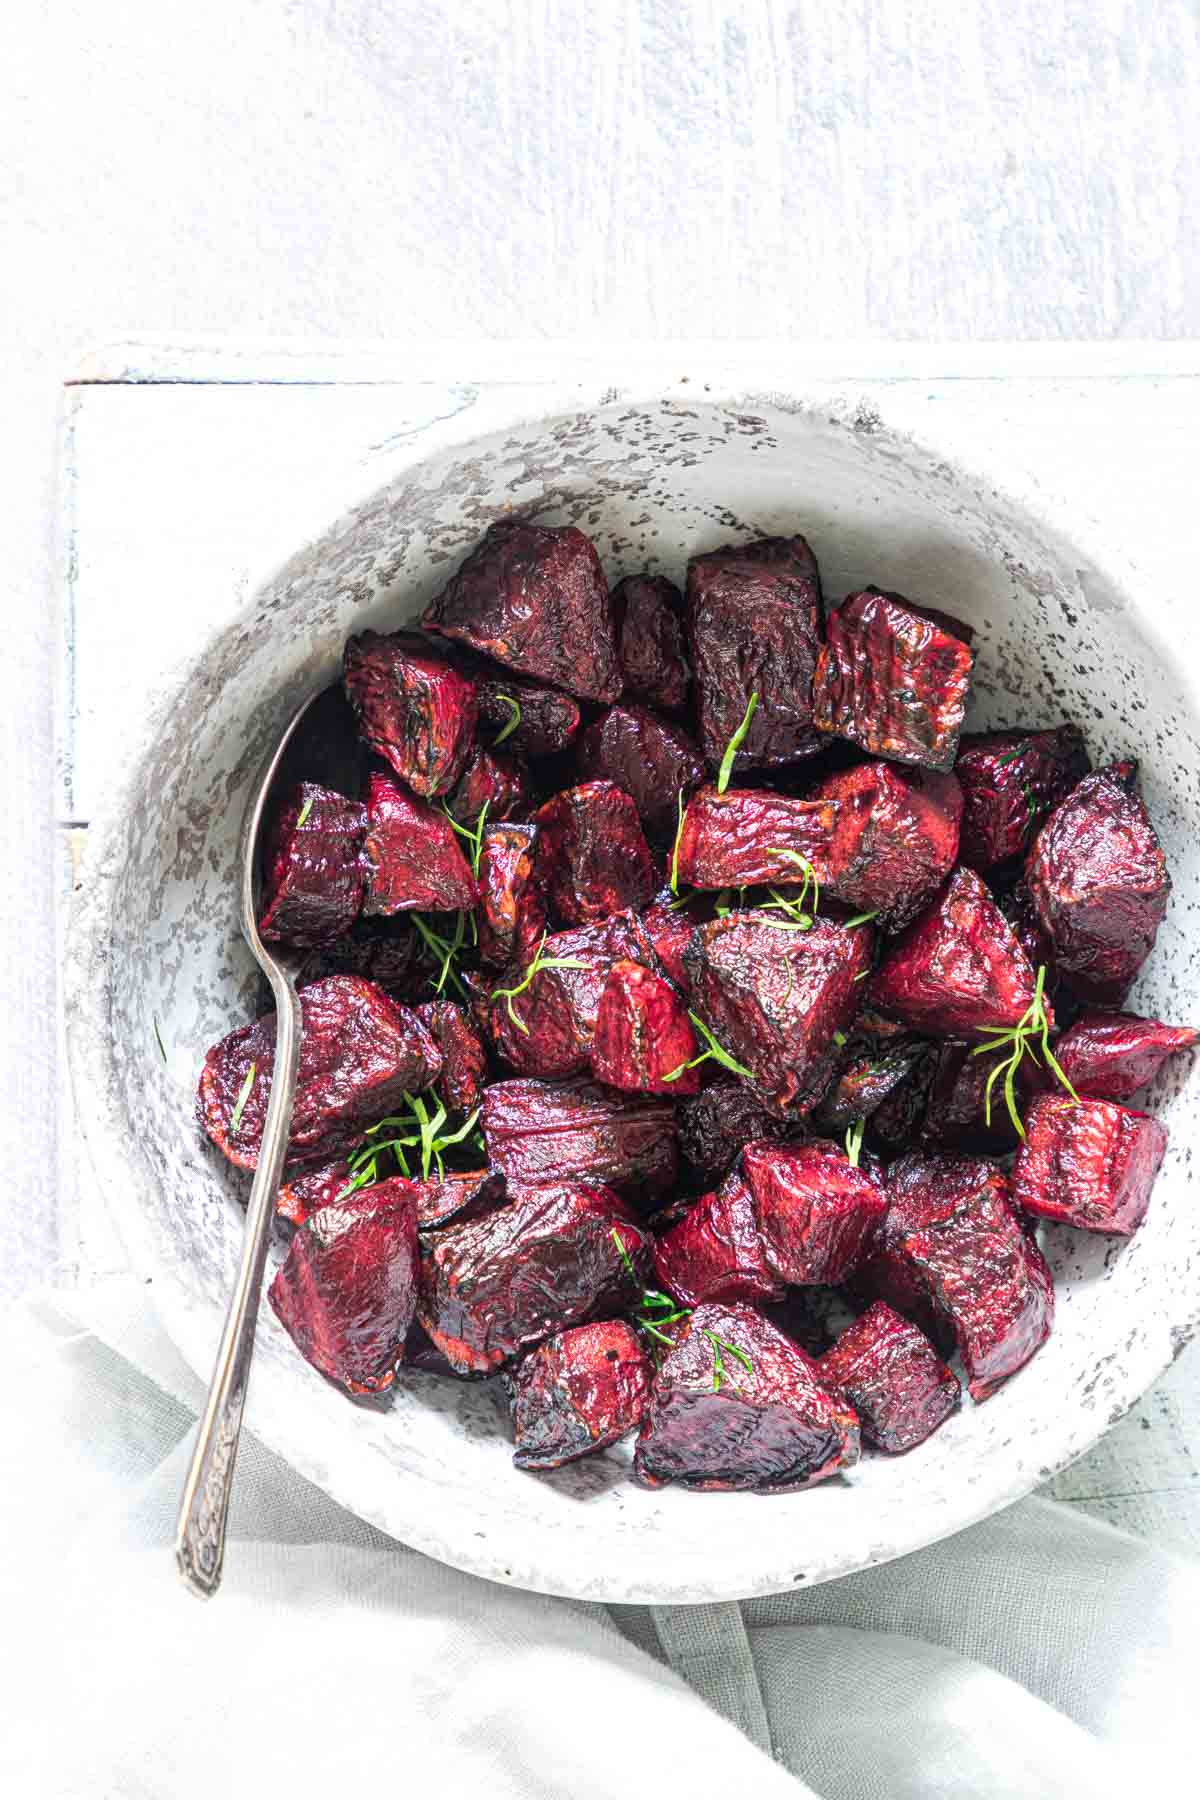 the completed roasted beet recipe ready to serve